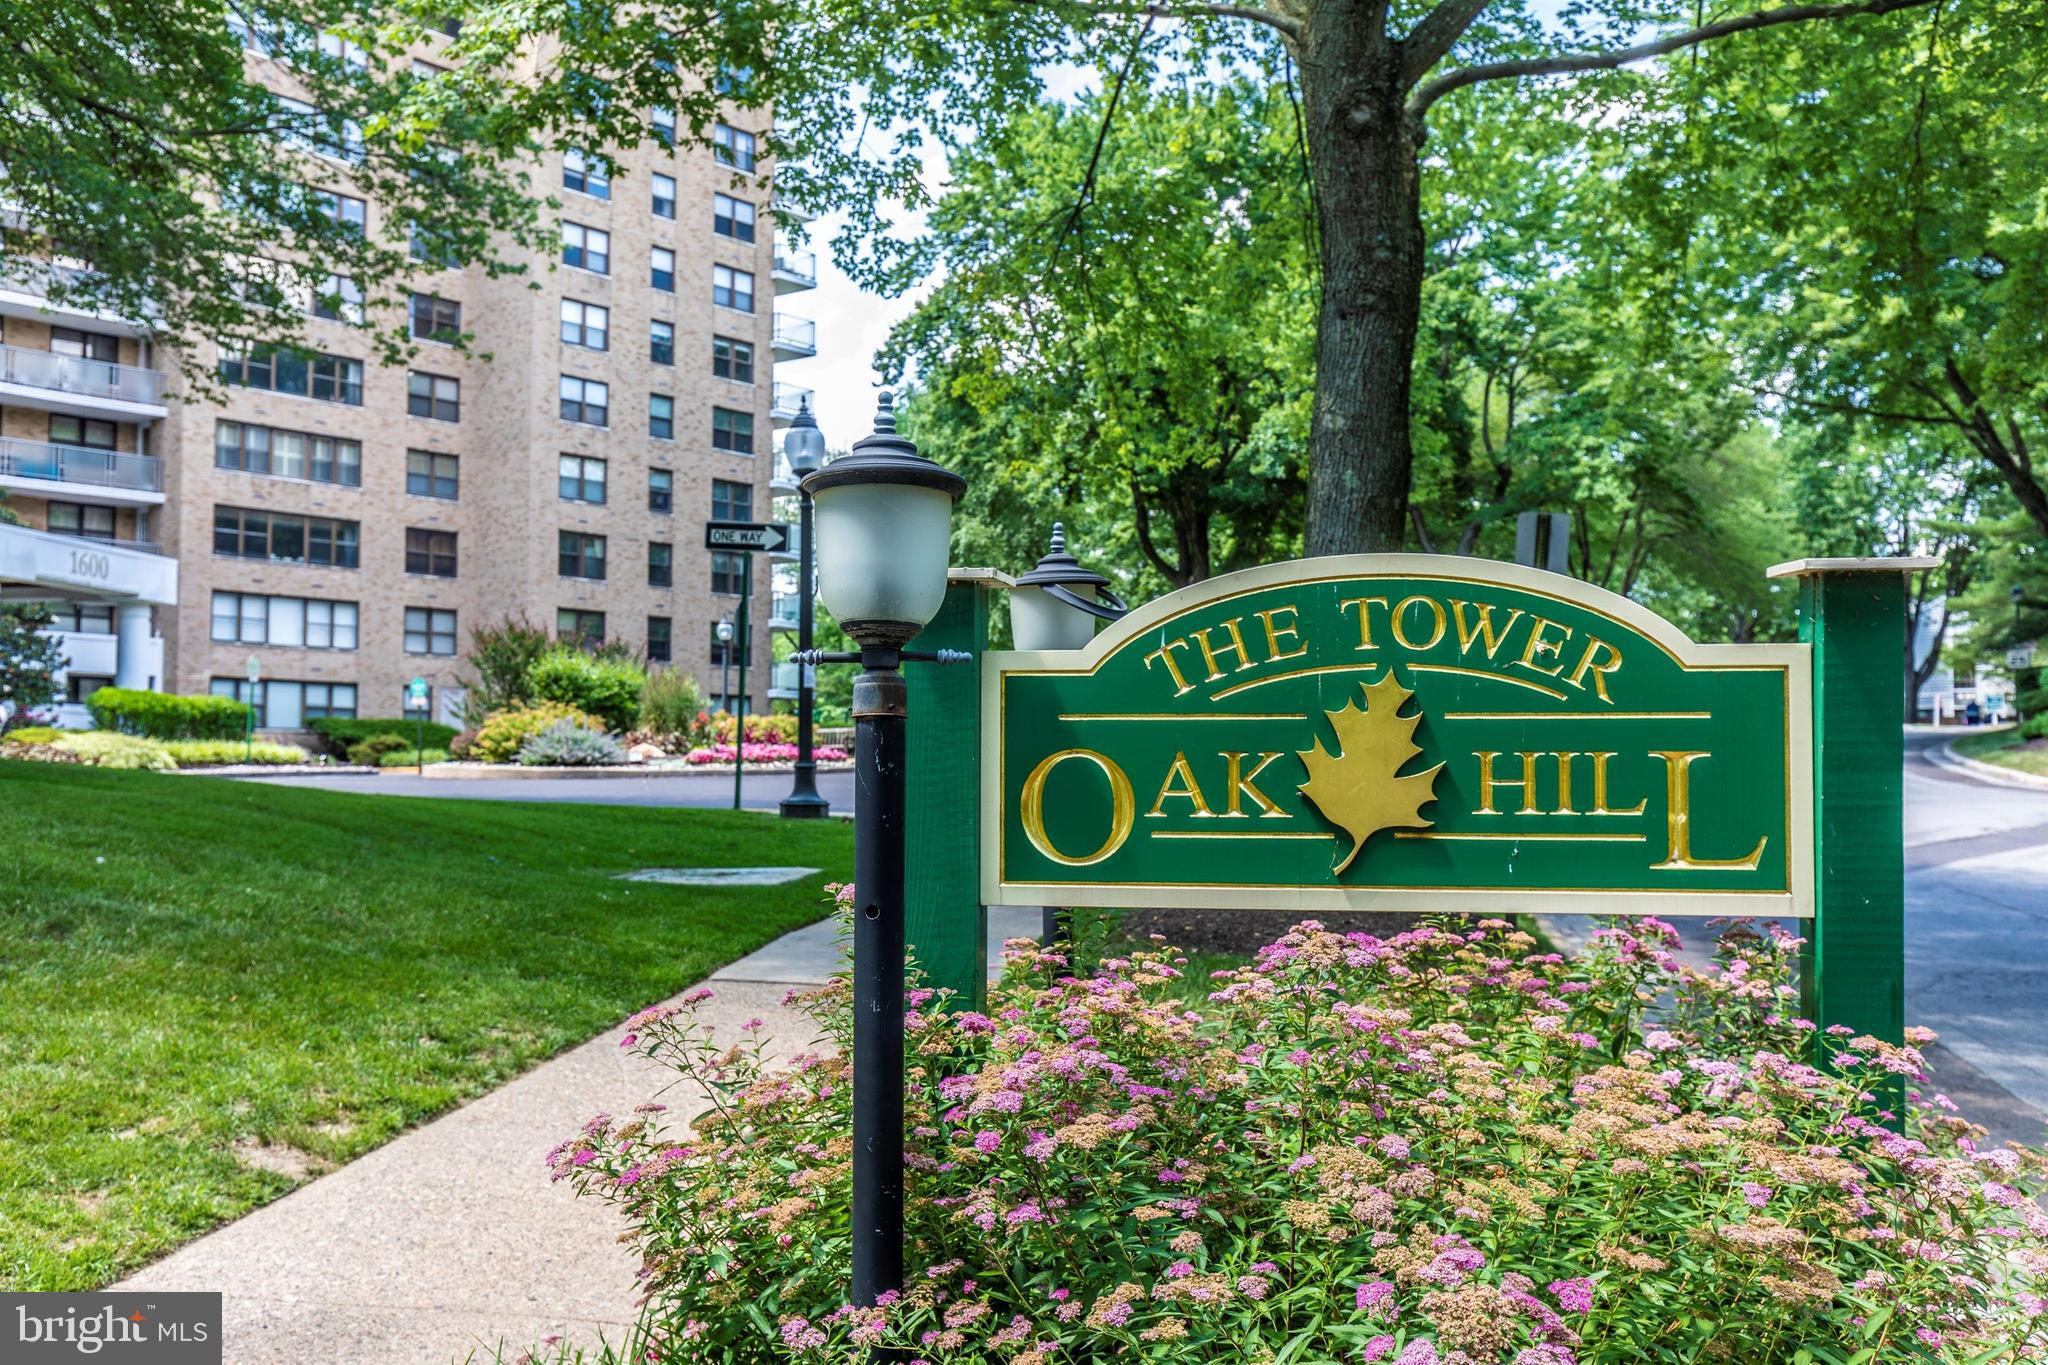 """JUST REDUCED AND VACANT!! TOWER AT  'OAK HILL' NEAR PHILA!! Located at """"The Tower at Oak Hill Condominium', Penn Valley, Pa. This is a Large 1 Bedroom home with an additional Den/Office. The home boasts beautiful  hardwood tile floors, high end Kitchen with all wood kitchen cabinets, stainless steel appliances and granite counter tops. The bathroom features 'Carrera Marble' with pedestal sink New tub. toilet, fixtures. There are CLOSETS GALORE through out!! This home offers the Largest living room and a full dining room. This home includes a separate den or office with a closet. The large Sun drenched balcony overlooks the scenic tree filled skyline, the pool and summer grilling area. 'The Oak Hill Tower' offers 2 gyms, 24 hour doorman, basement storage and laundry room. Lower Merion School District bus at front door. Condo dues include Air and Heat by convectors, water, common area maintenance, pool access and two both gyms. Special bulk cable 81.00 month.  $250 move in fee and $500 elevator deposit Great Opportunity for a totally home! Minutes to center city Phila. via xway. Bus 44 at front door."""